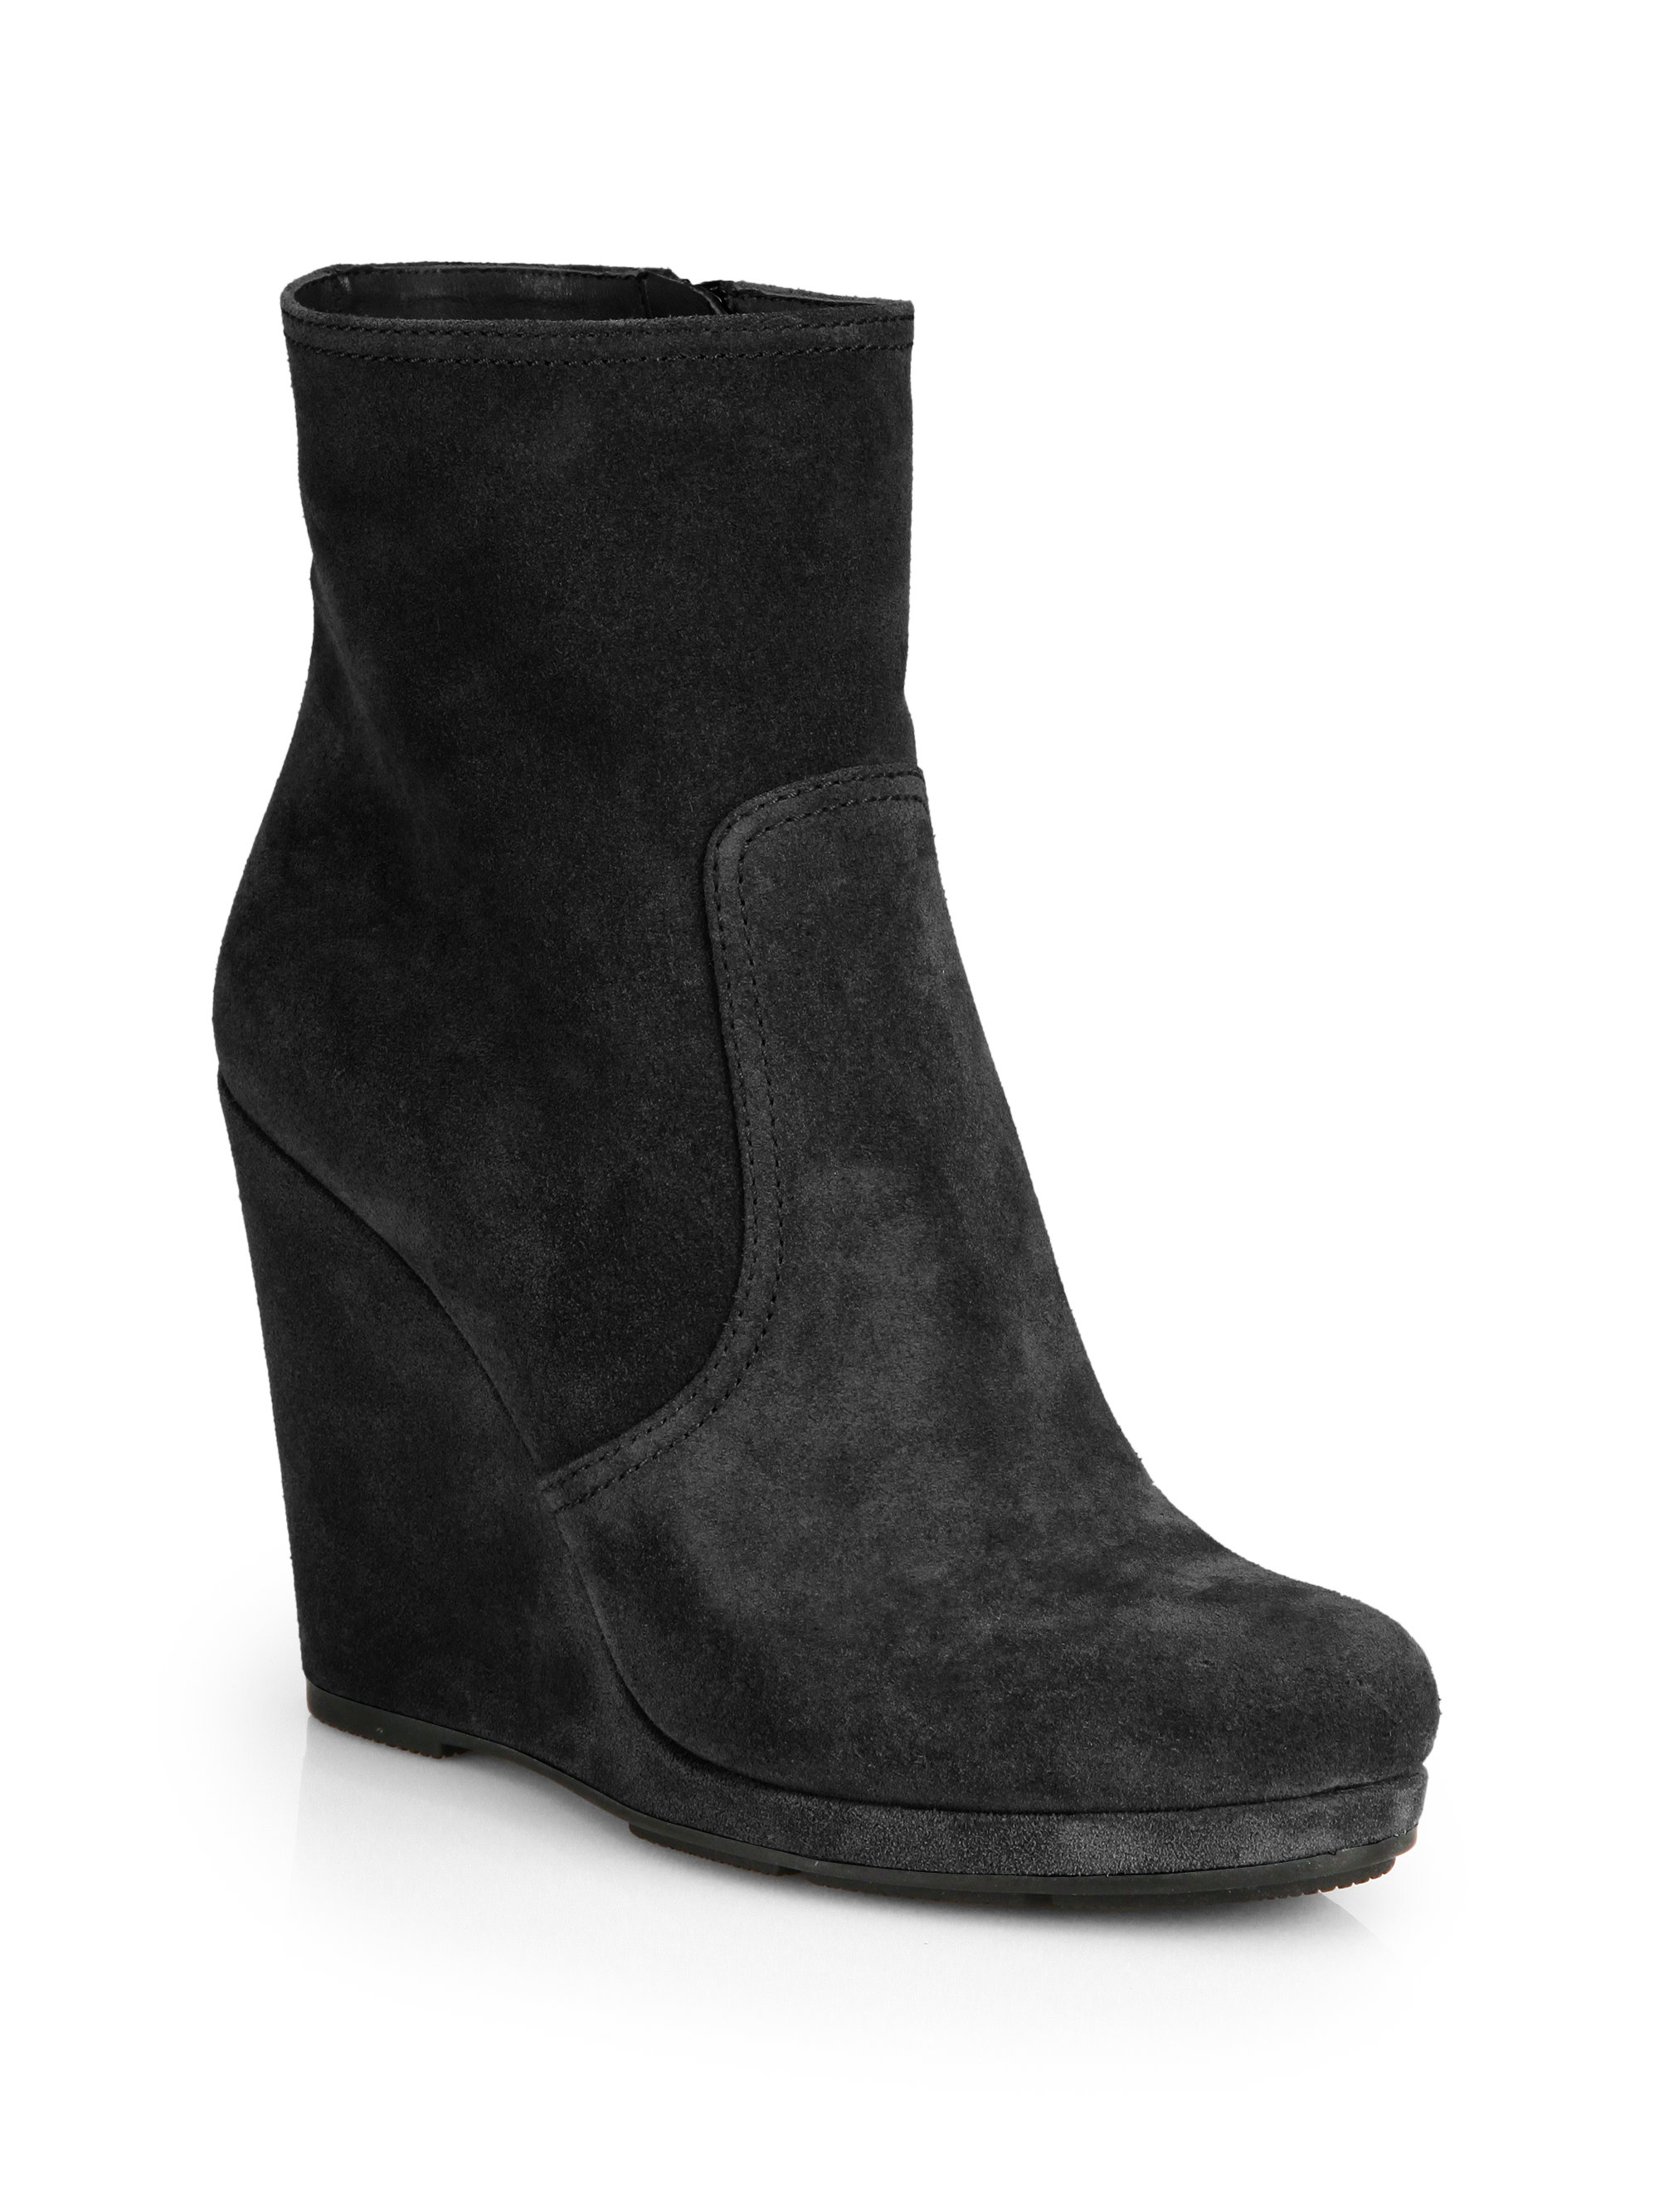 prada suede wedge ankle boots in black nero black lyst